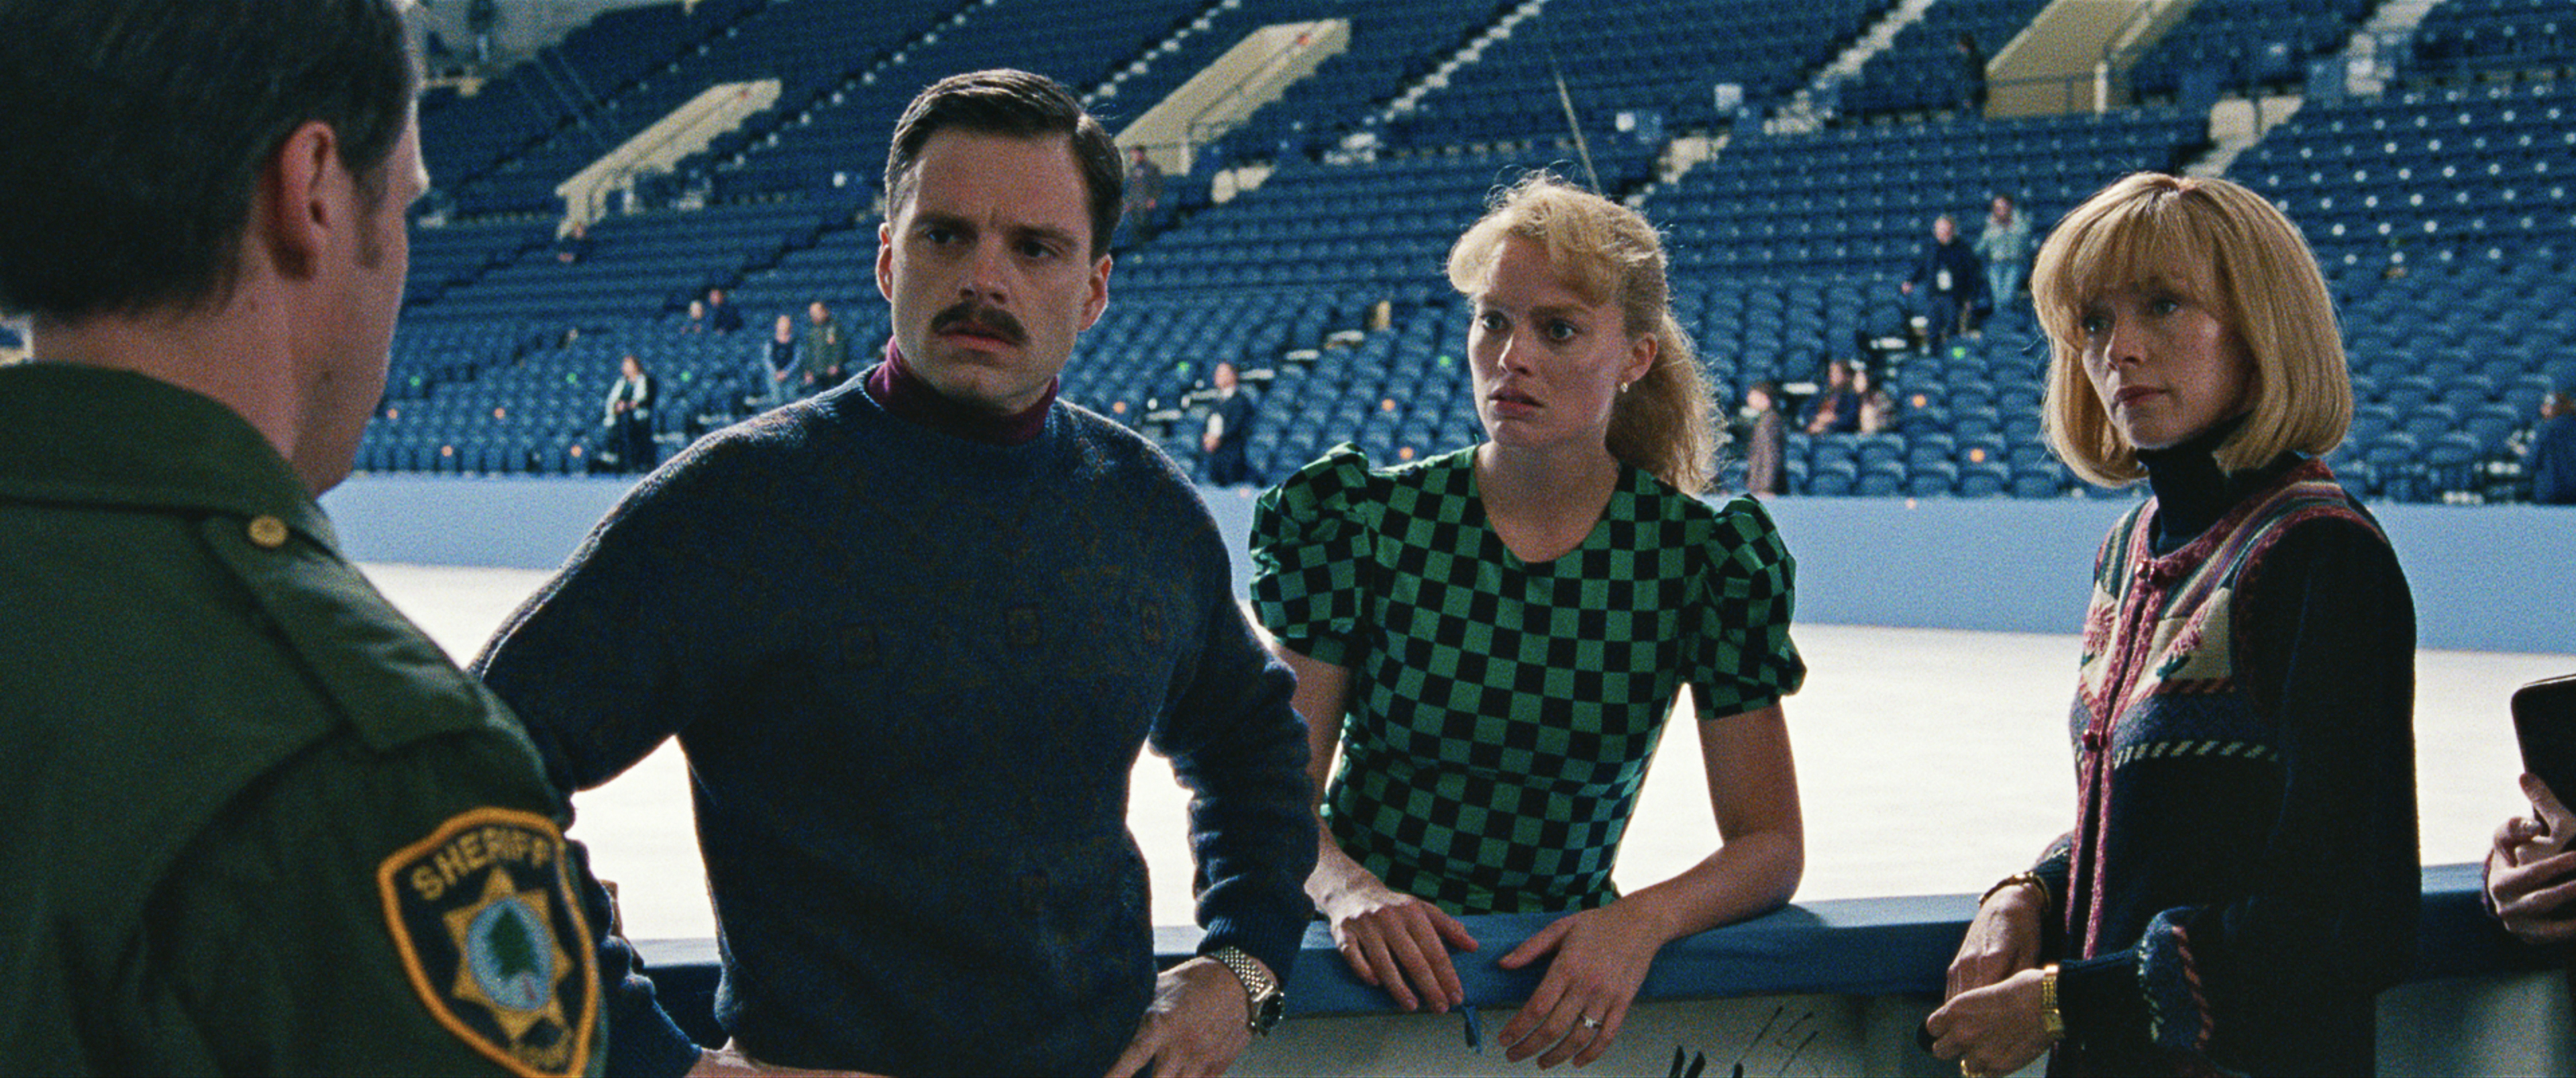 10- Jeff Gillooly (Sebastian Stan), Tonya Harding (Margot Robbie) and Diane Rawlinson (Julianne Nicholson) in I, TONYA, courtesy of NEON and 30WEST